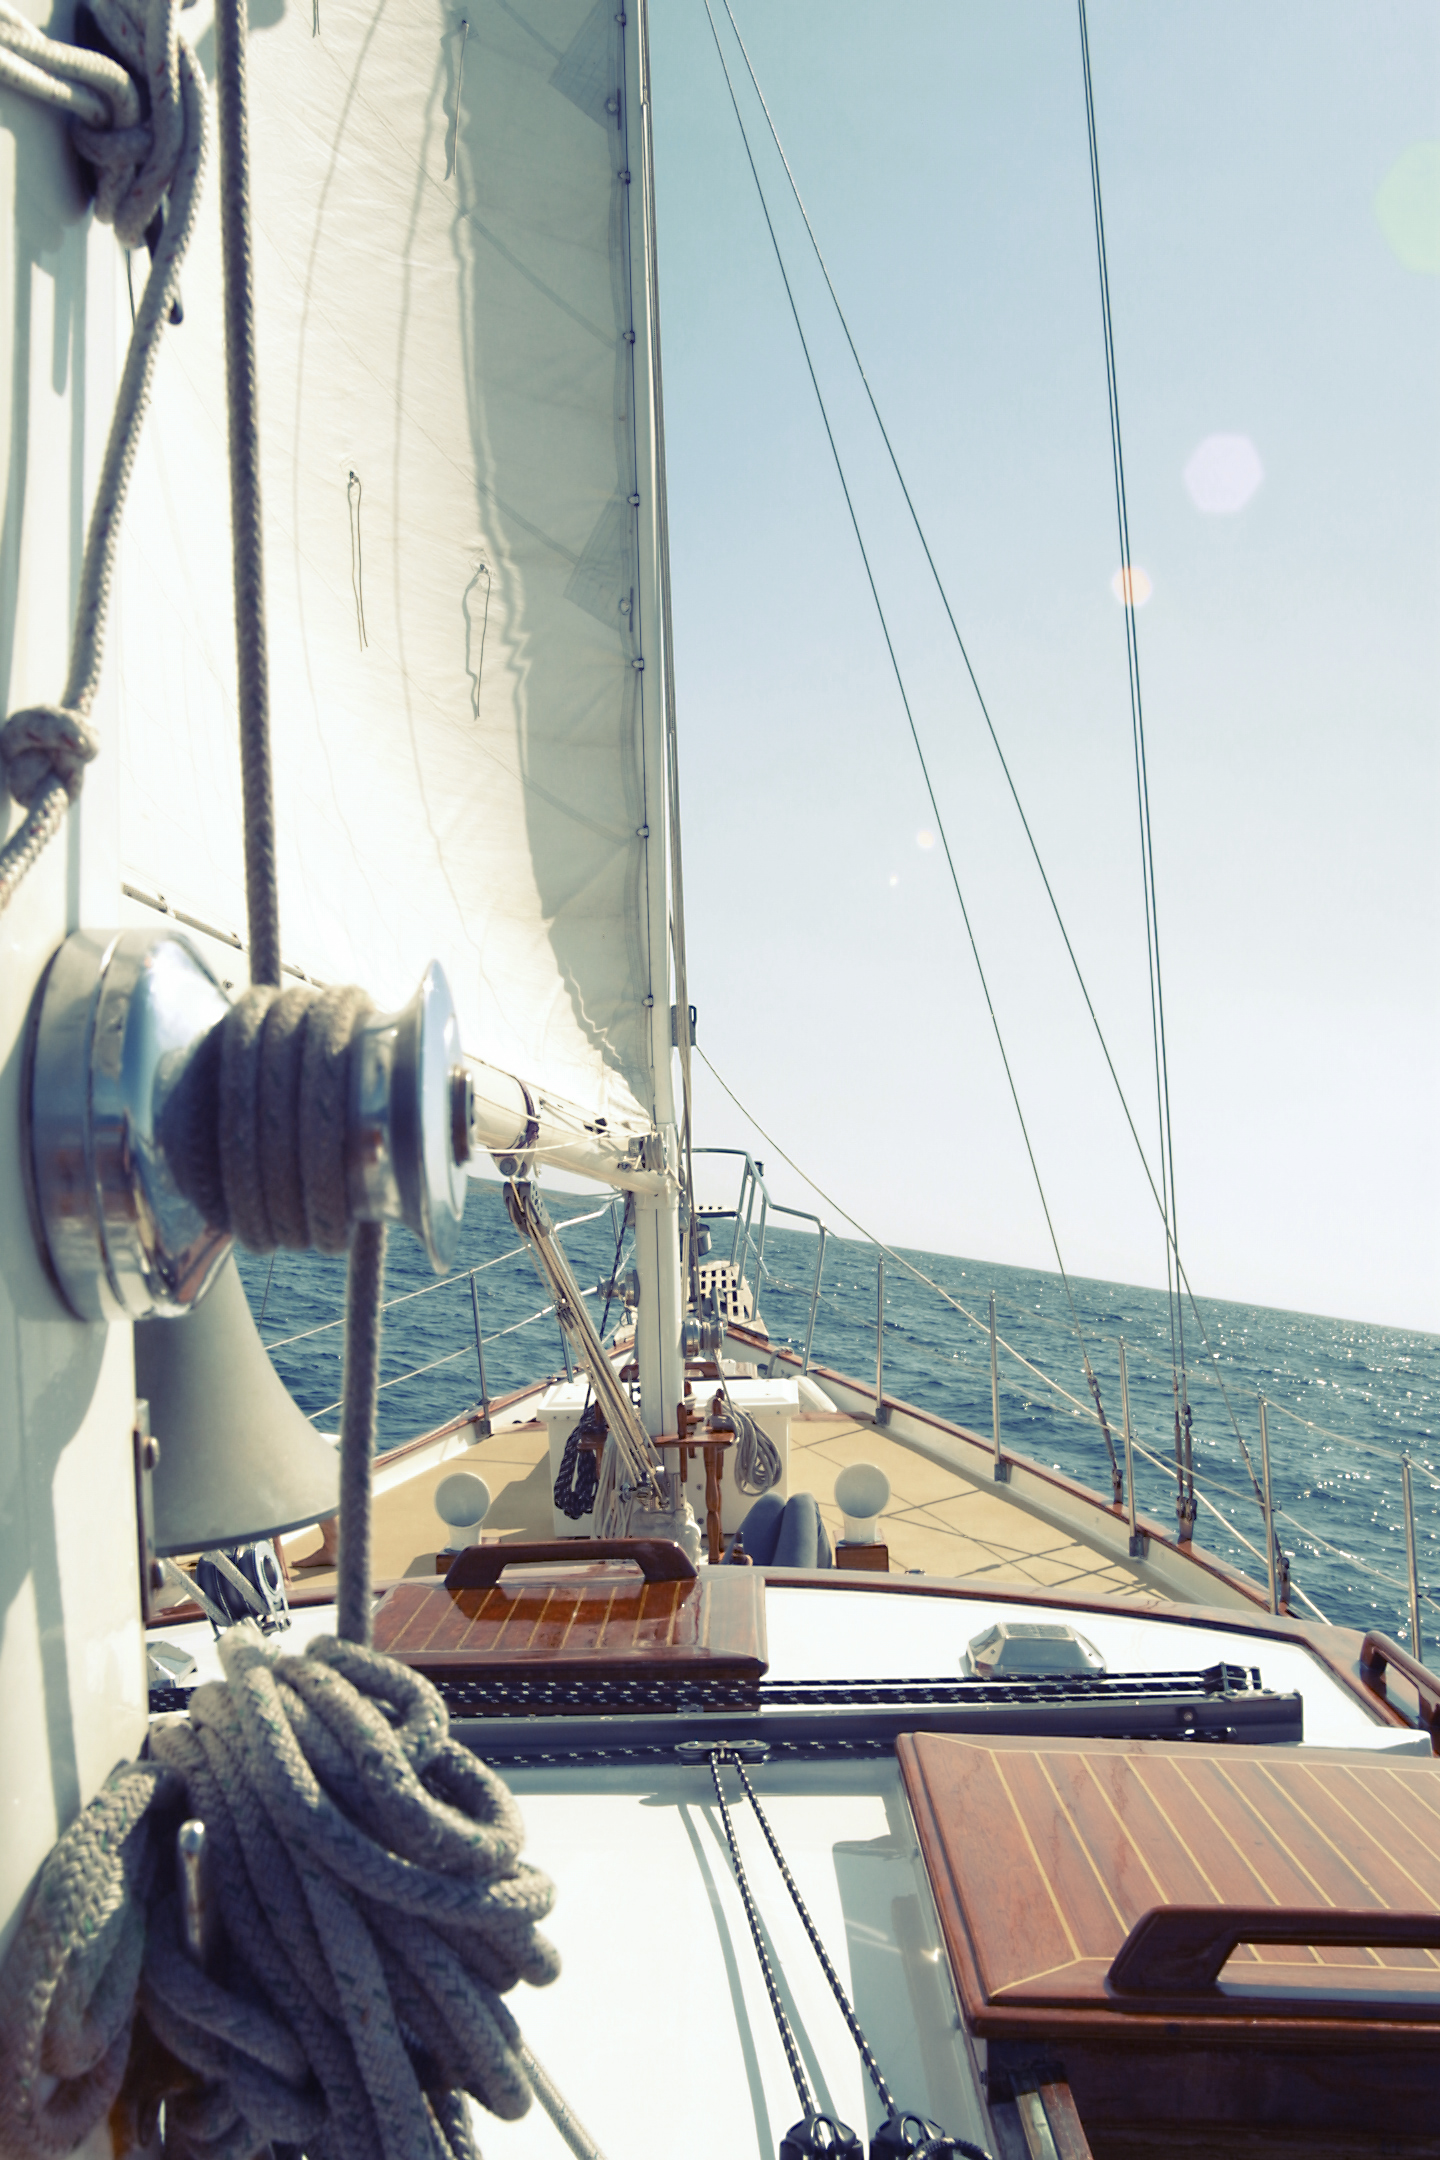 Sailboat, Blue, Boat, Rope, Sail, HQ Photo